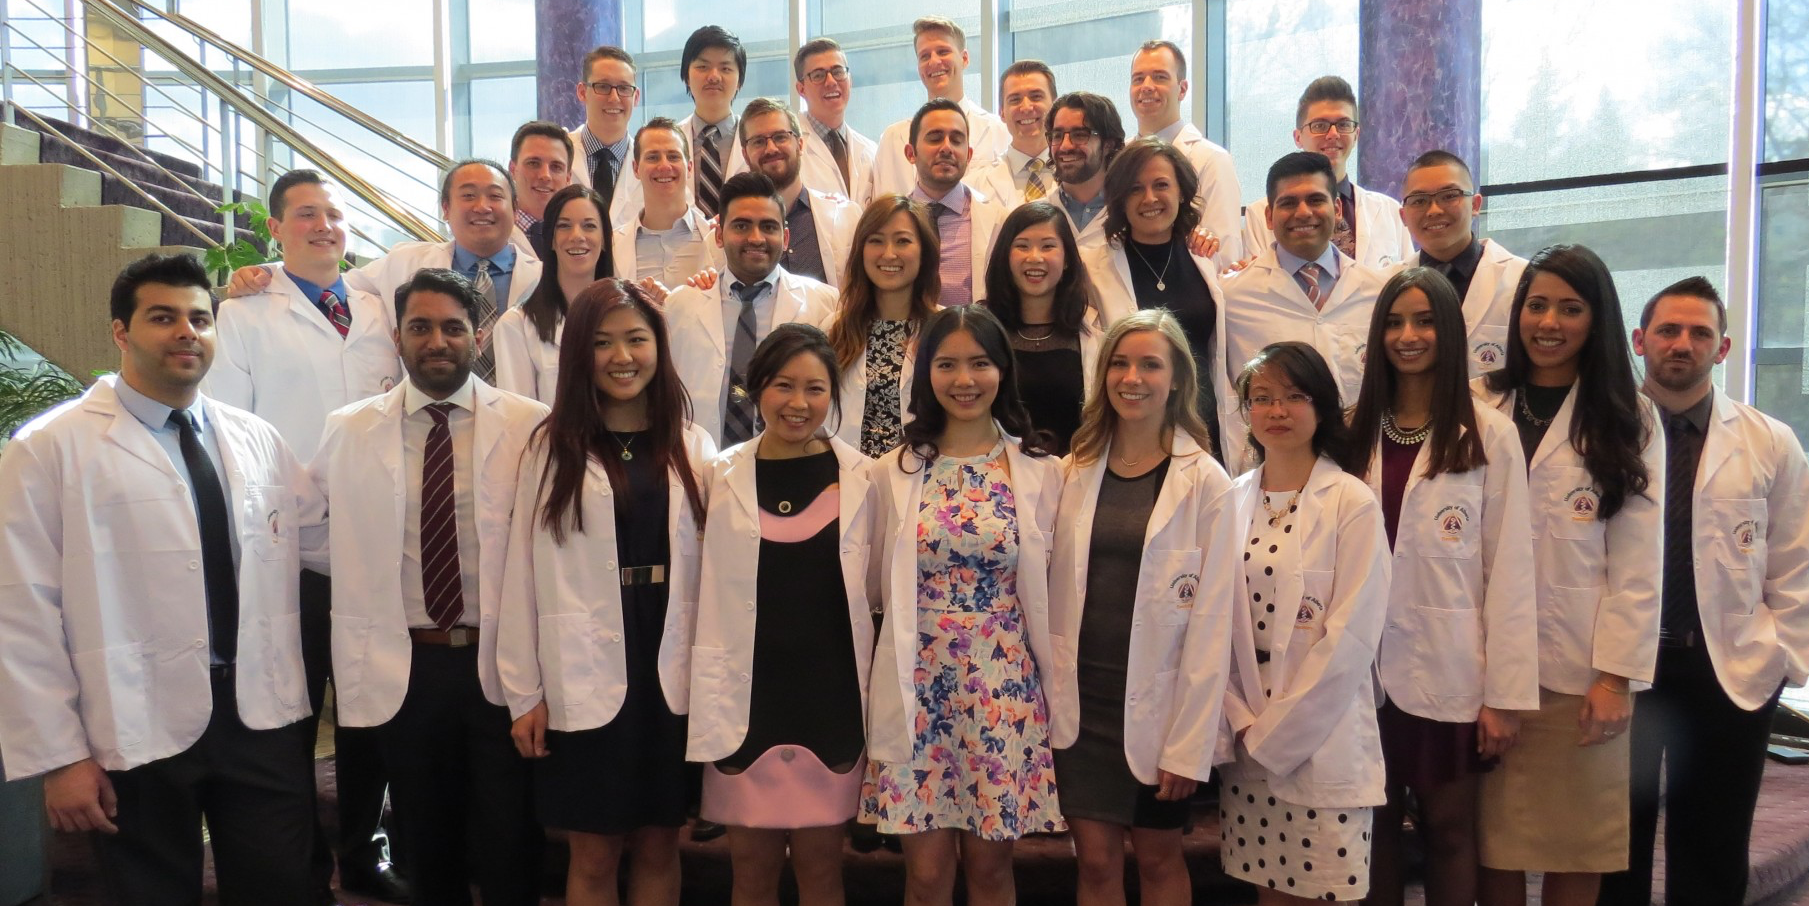 Doctor of Dental Surgery (DDS) class of 2018.